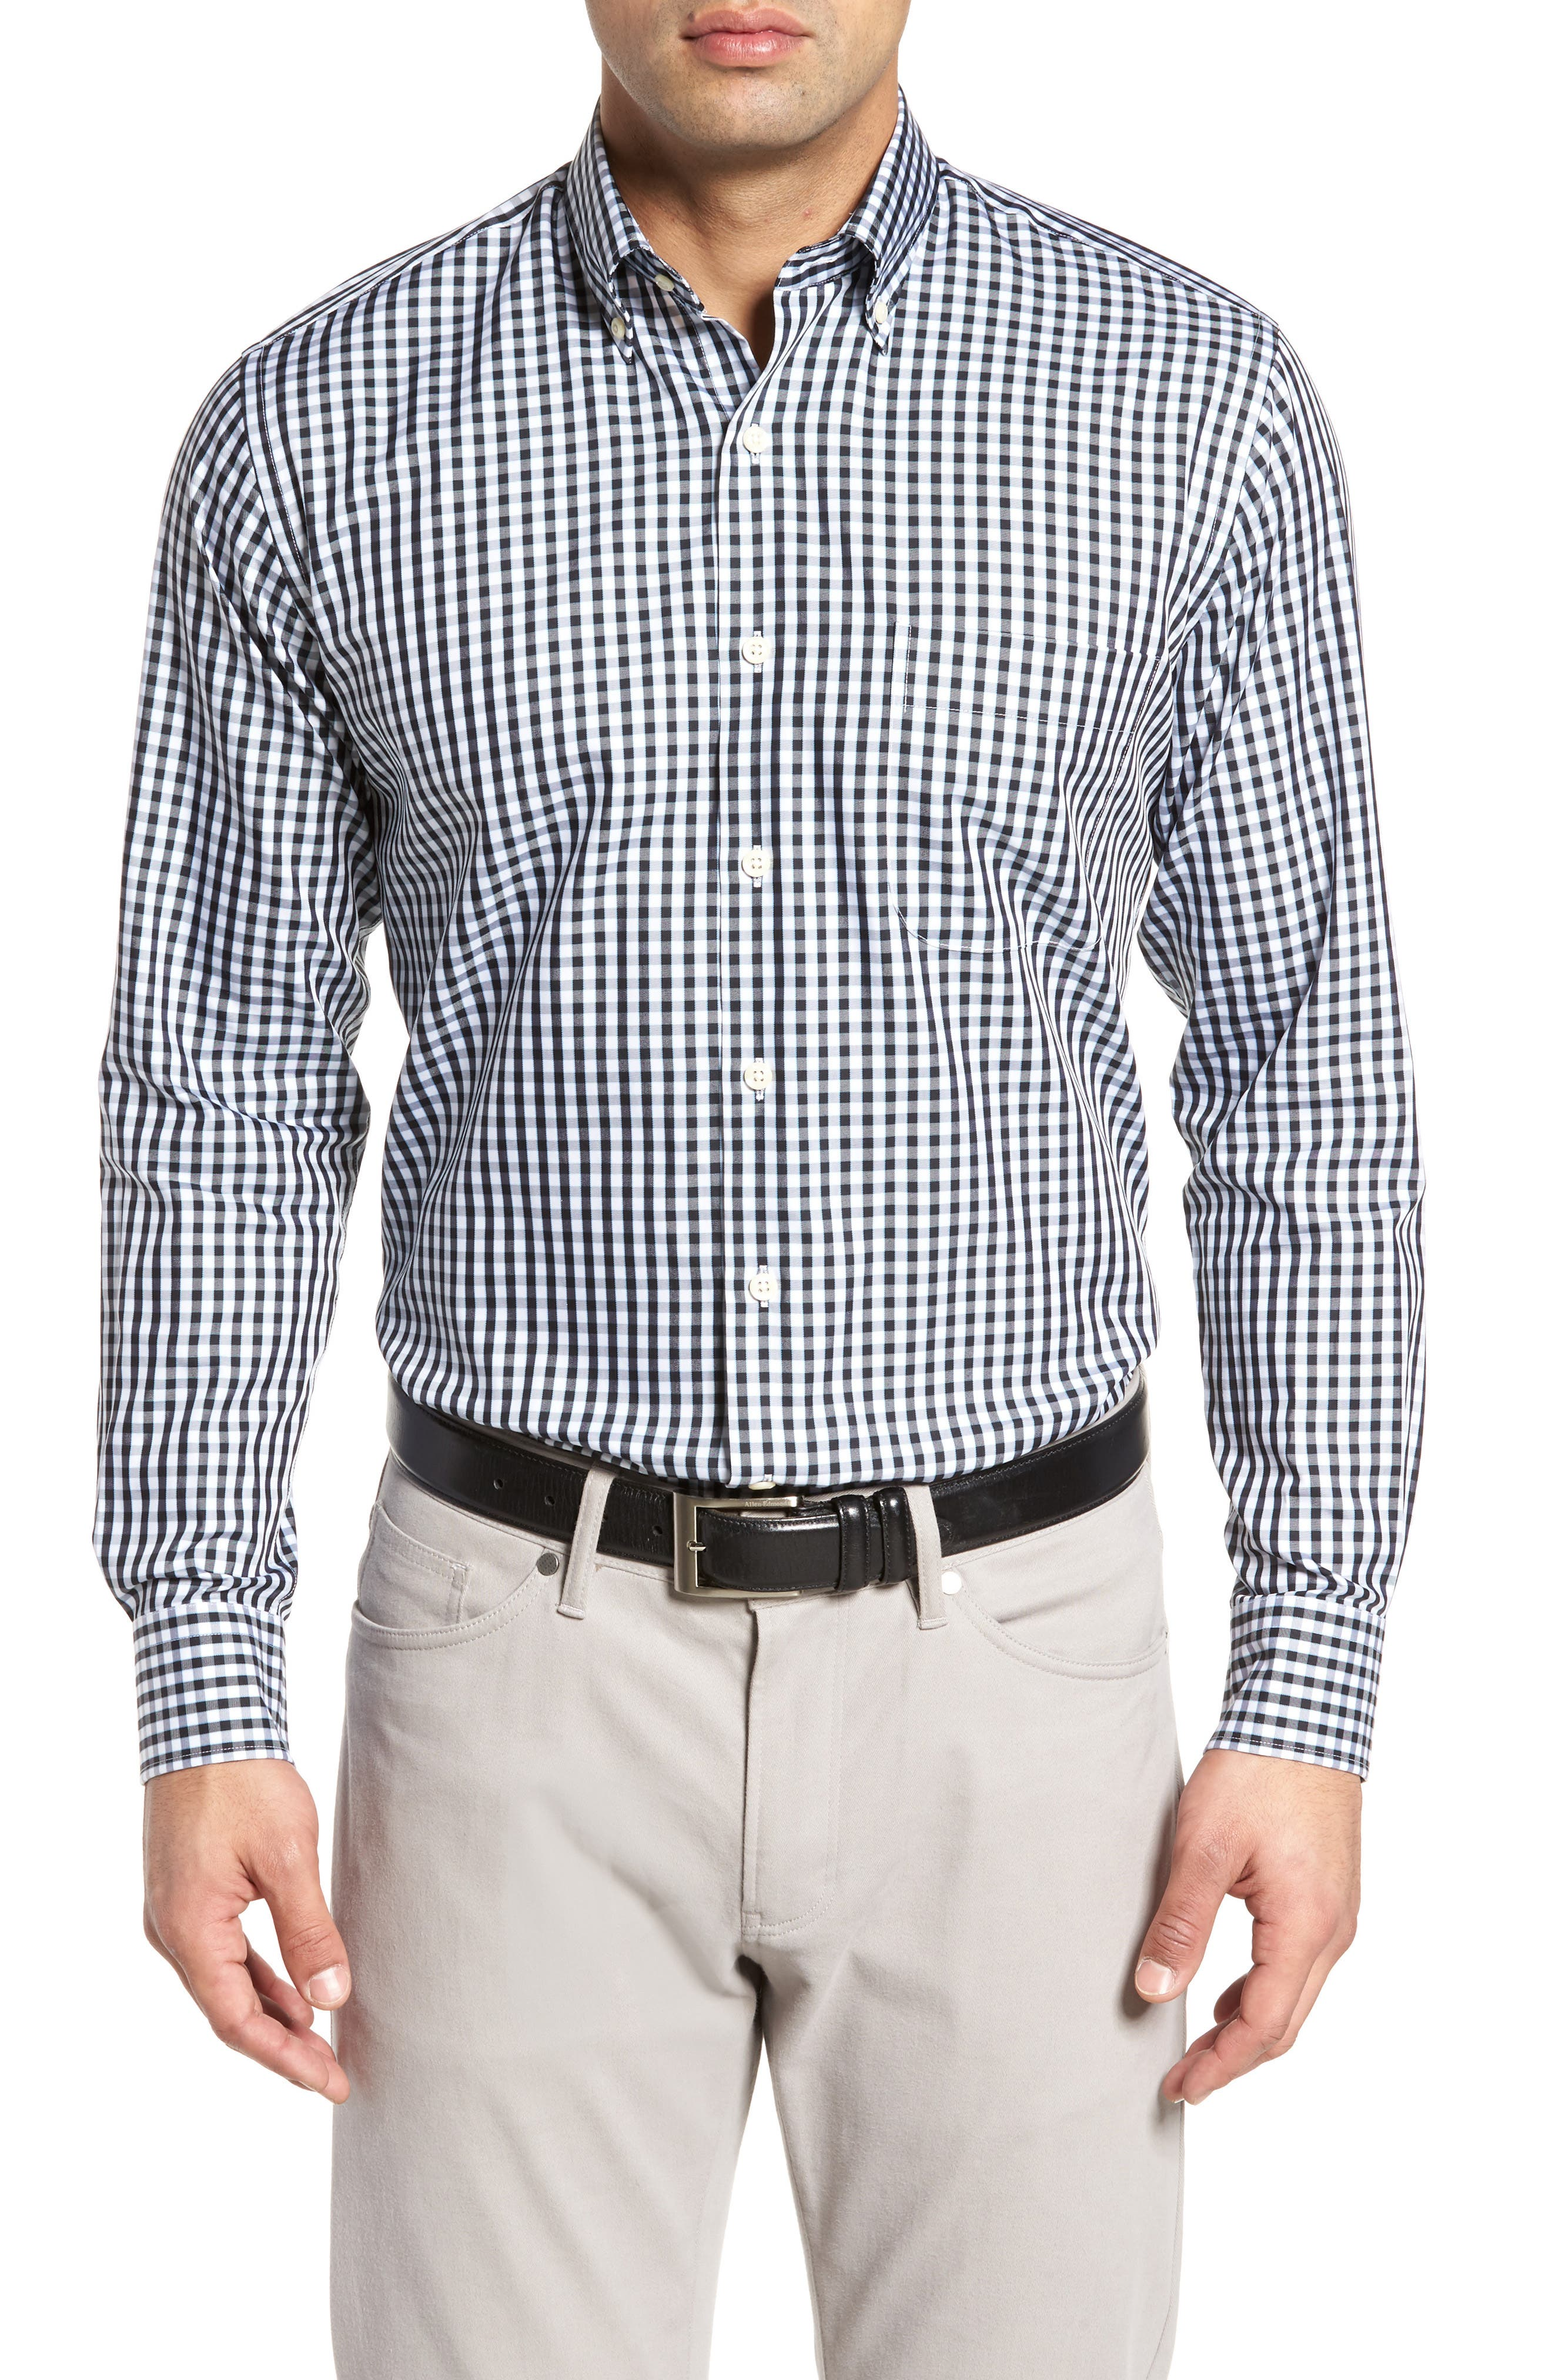 Black Sand Classic Fit Gingham Check Sport Shirt,                             Main thumbnail 1, color,                             BLACK